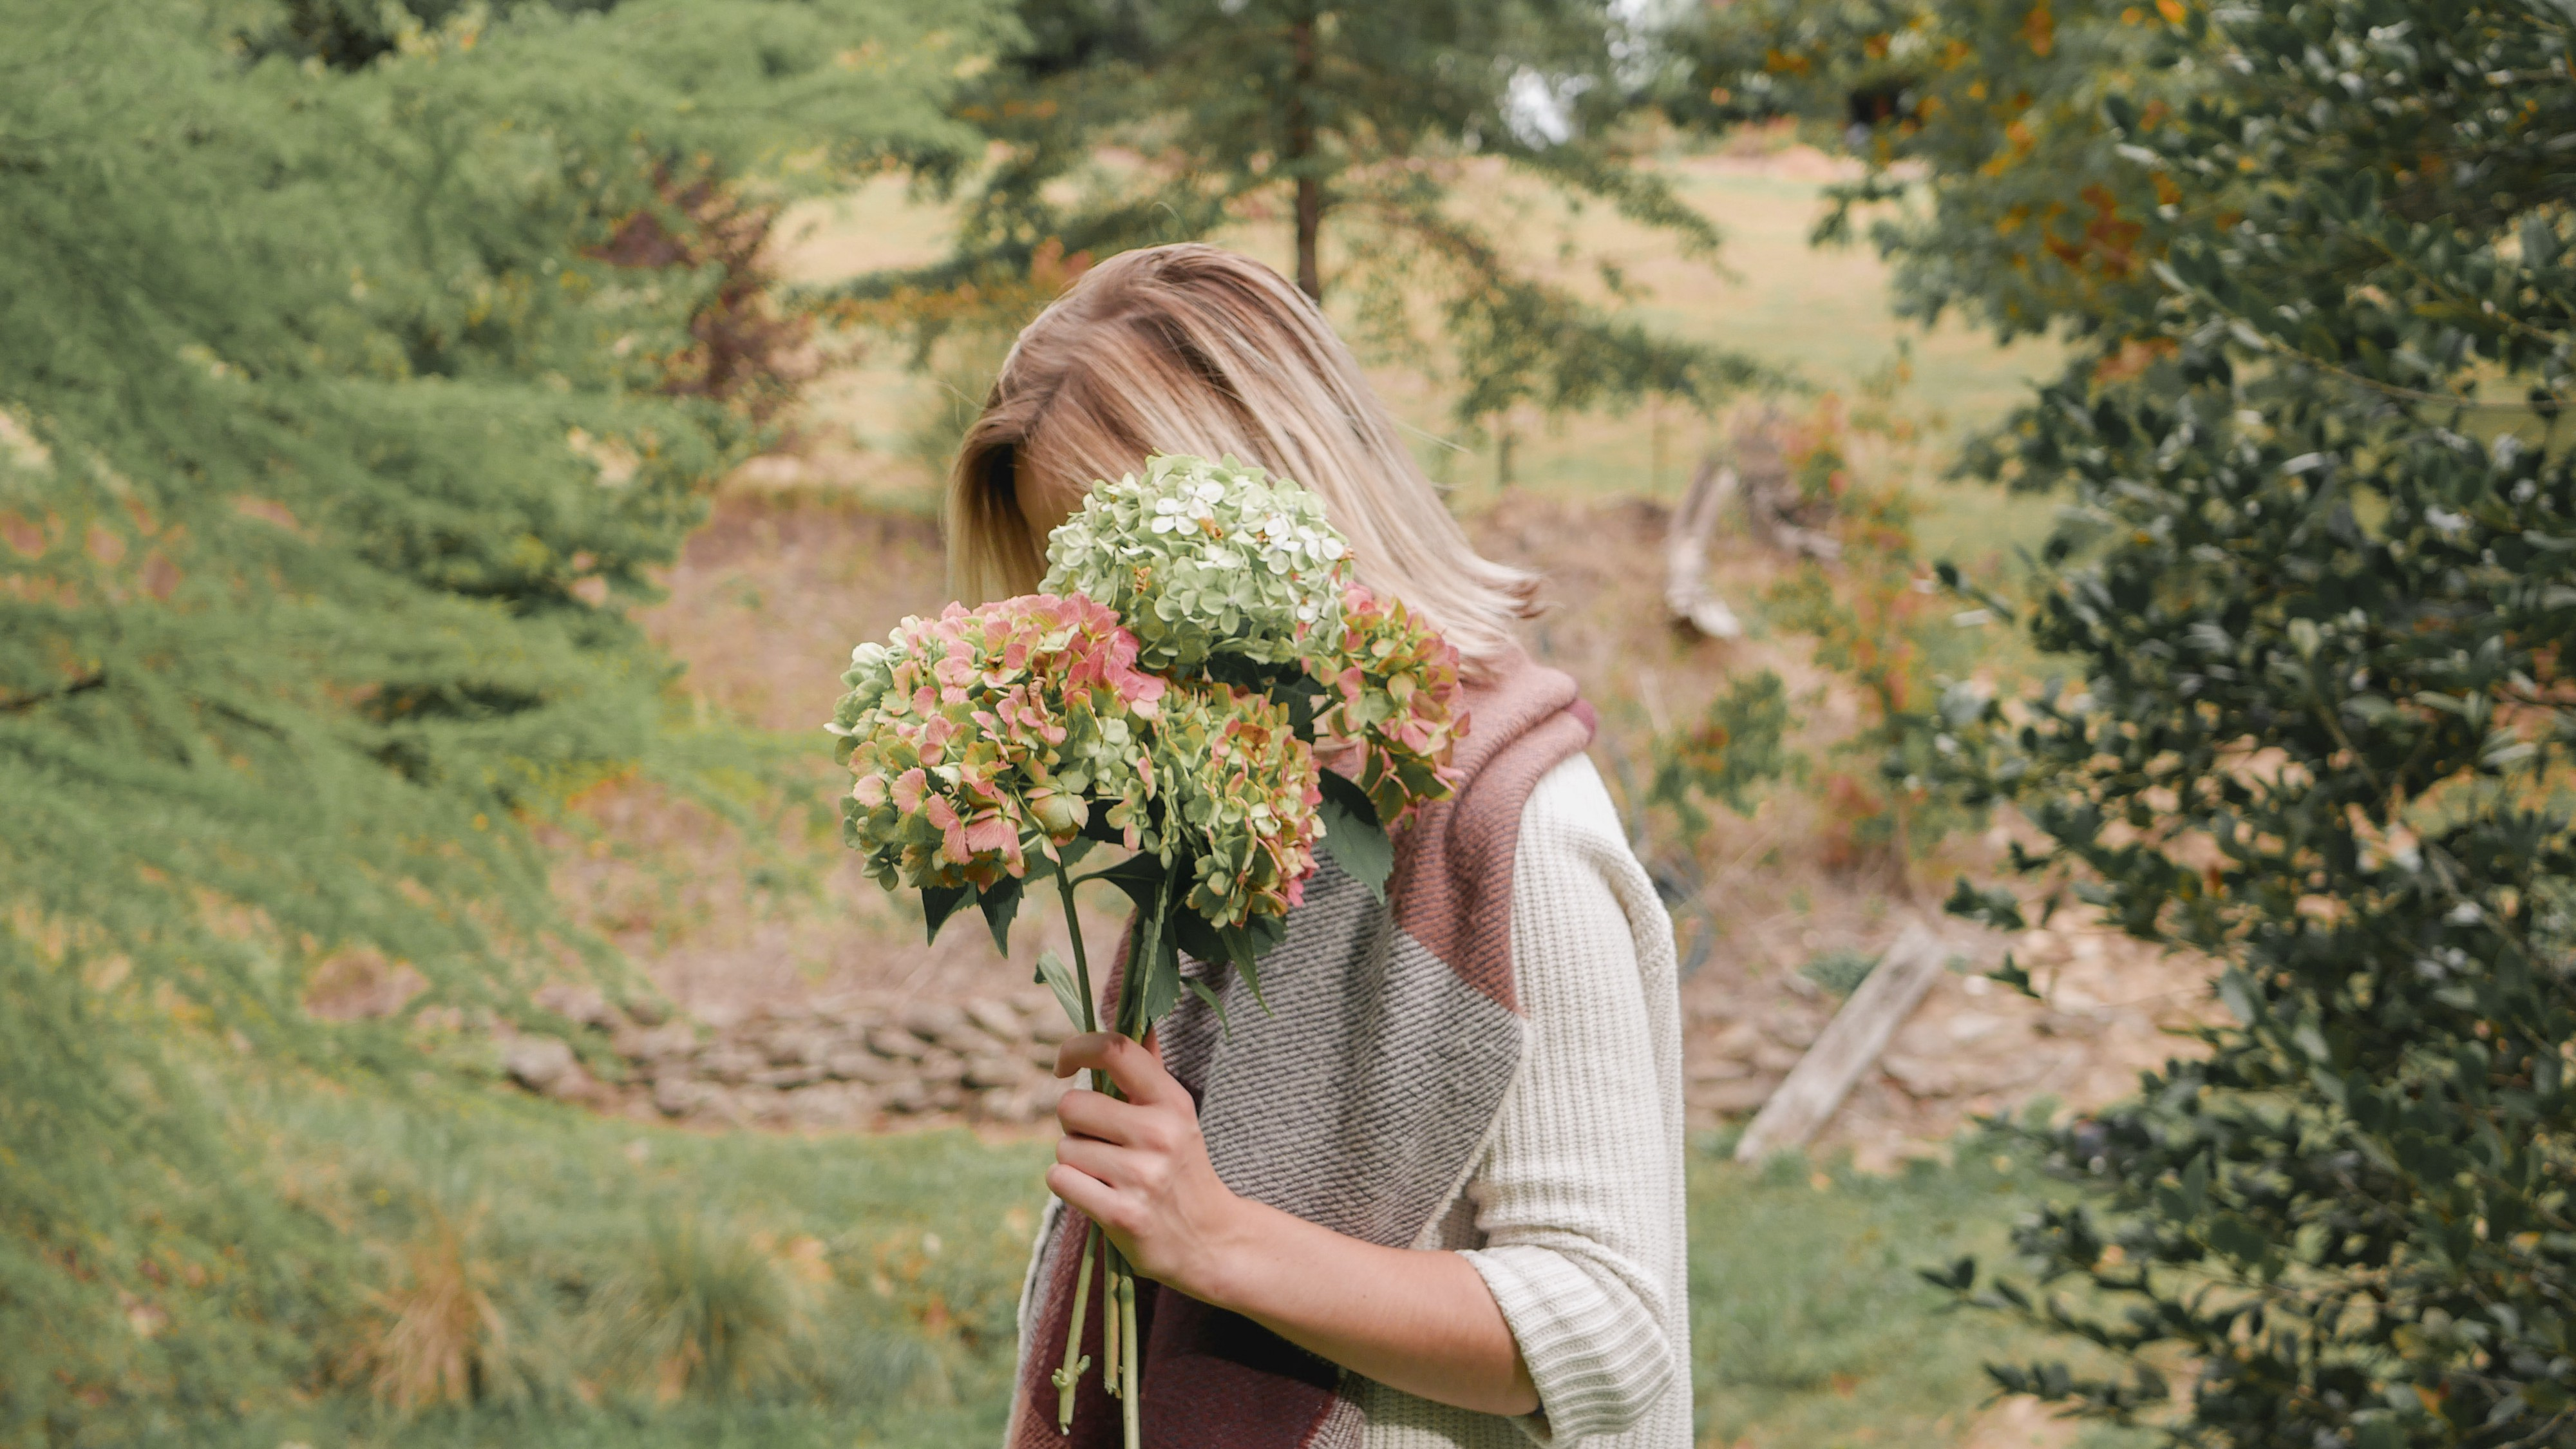 A woman holding a bunch of hydrangeas on a cool day